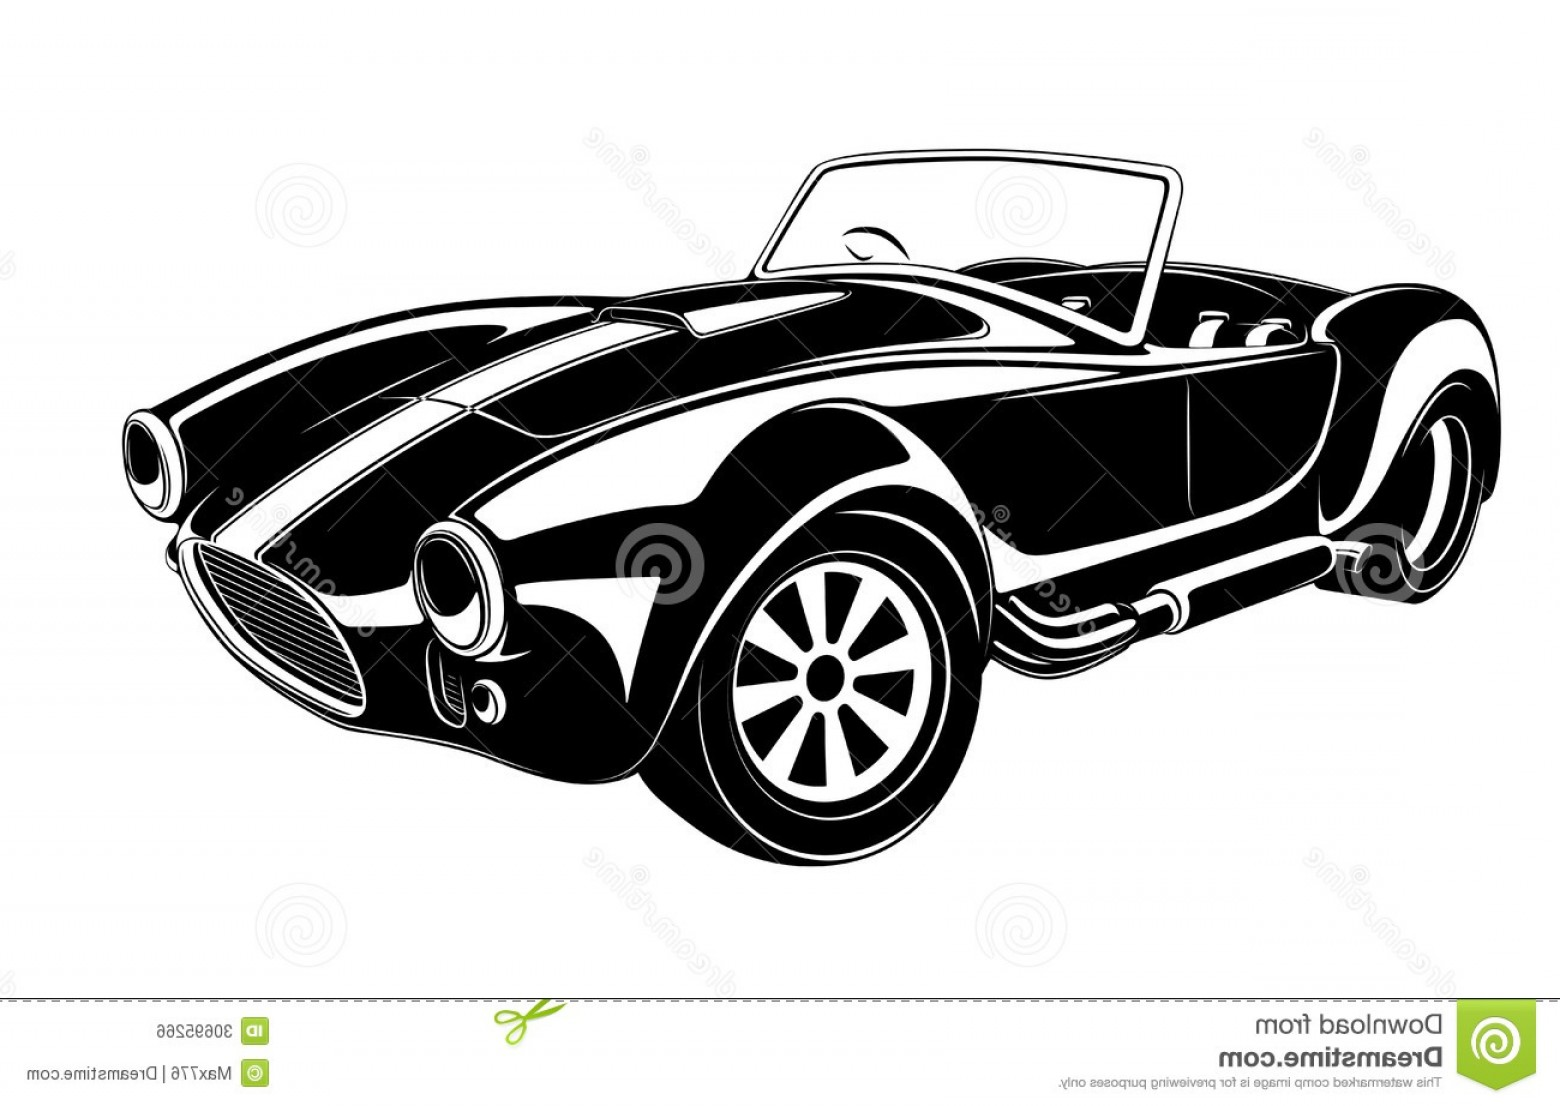 Cars Skyline Vector: Royalty Free Stock Image Retro Car Vector To Use Design Image